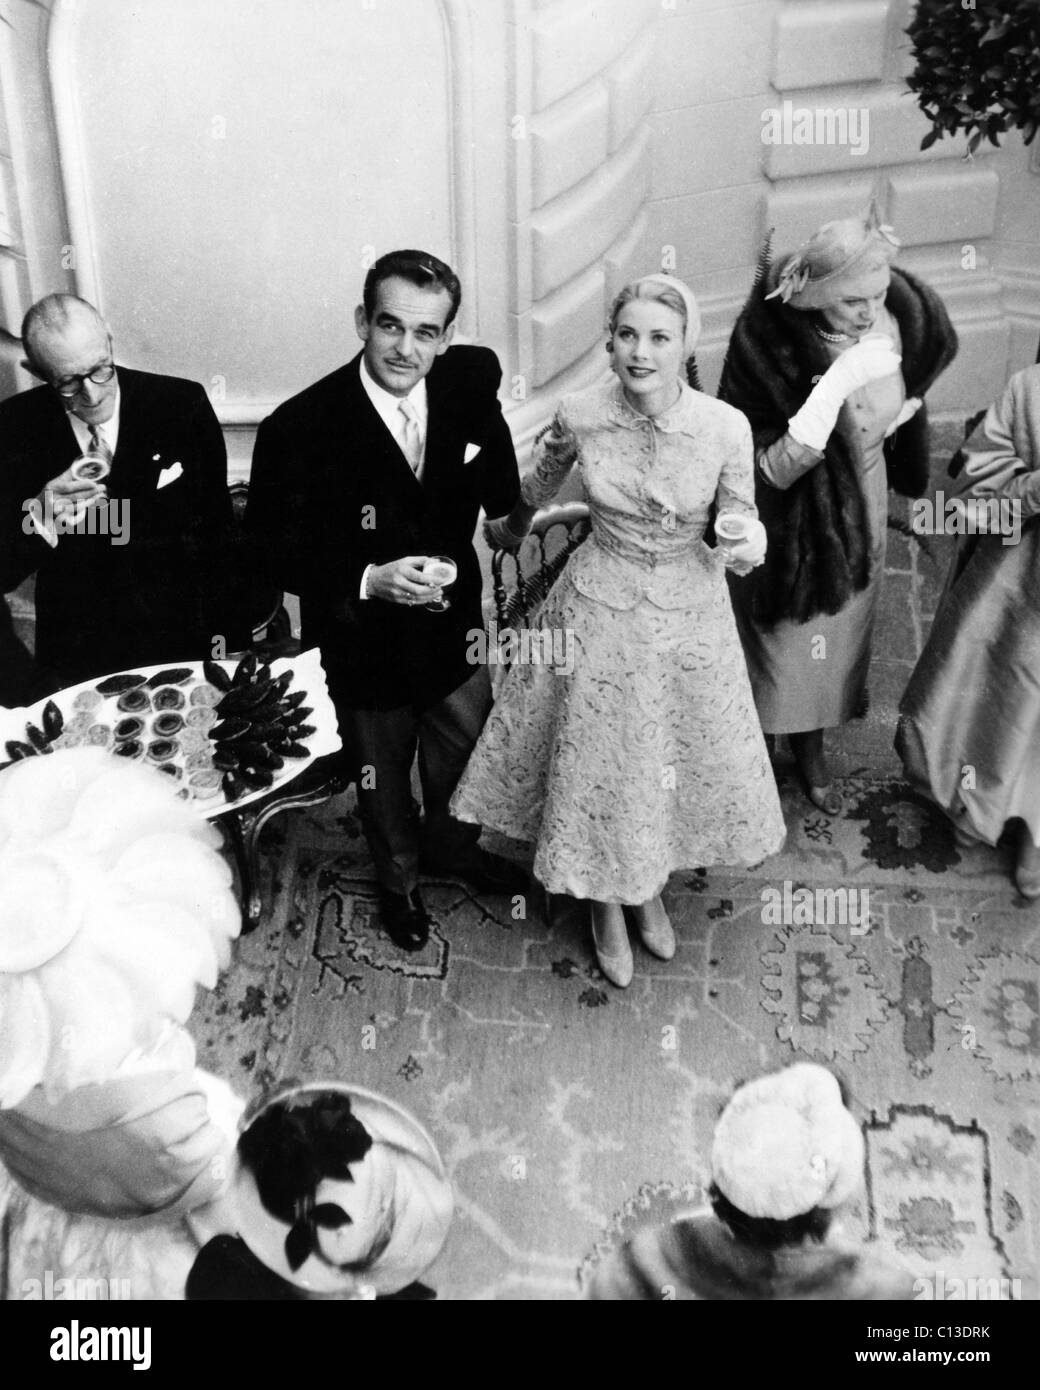 PRINCE RAINIER and PRINCESS GRACE at their wedding, 1956 - Stock Image